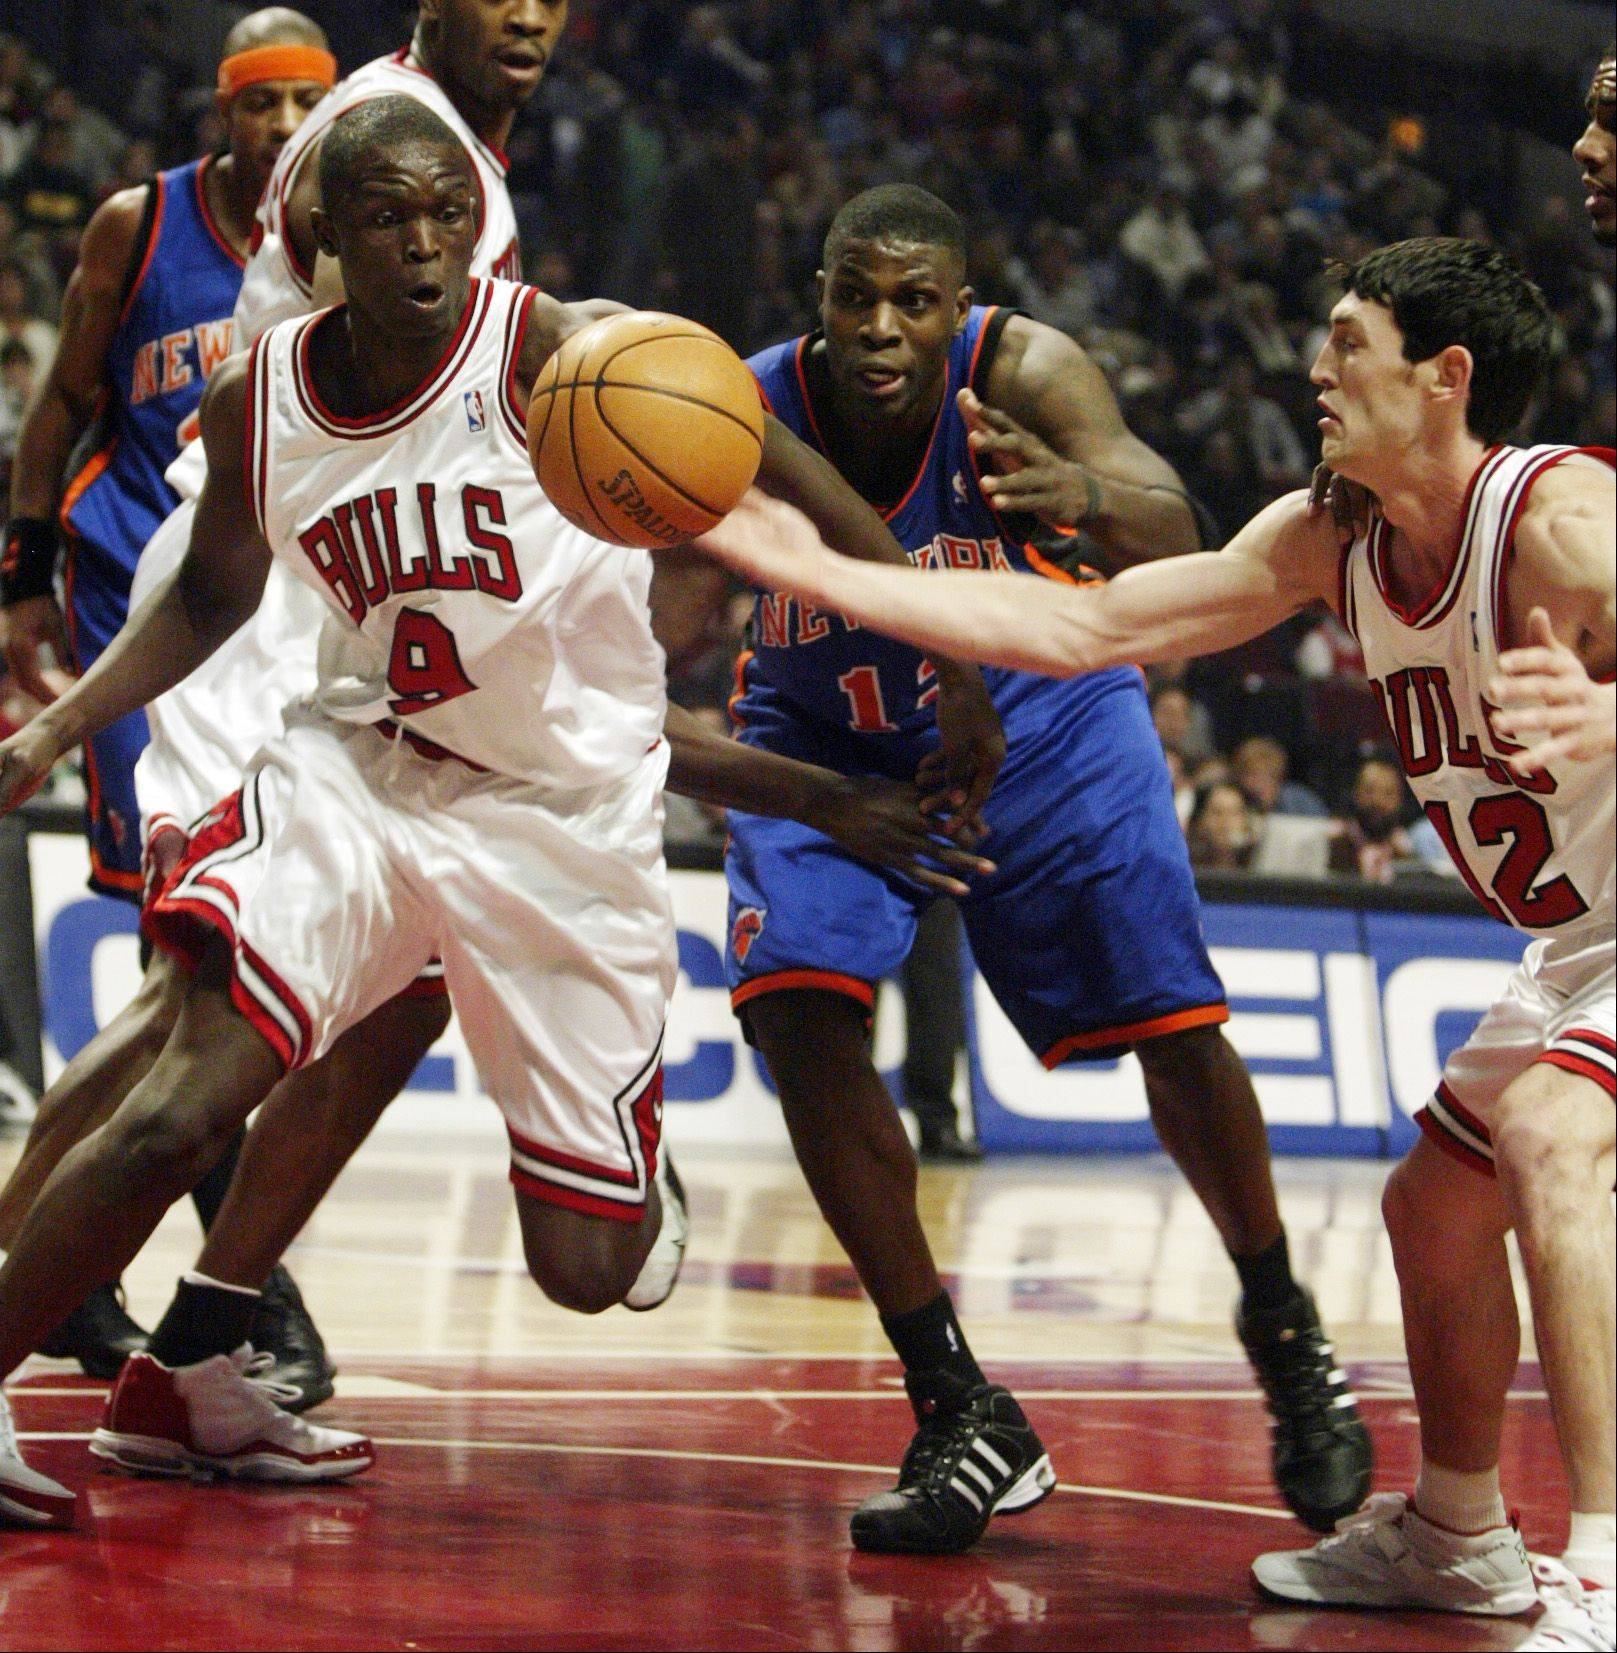 The Bulls officially signed Nazr Mohammed, shown here playing for the Knicks.